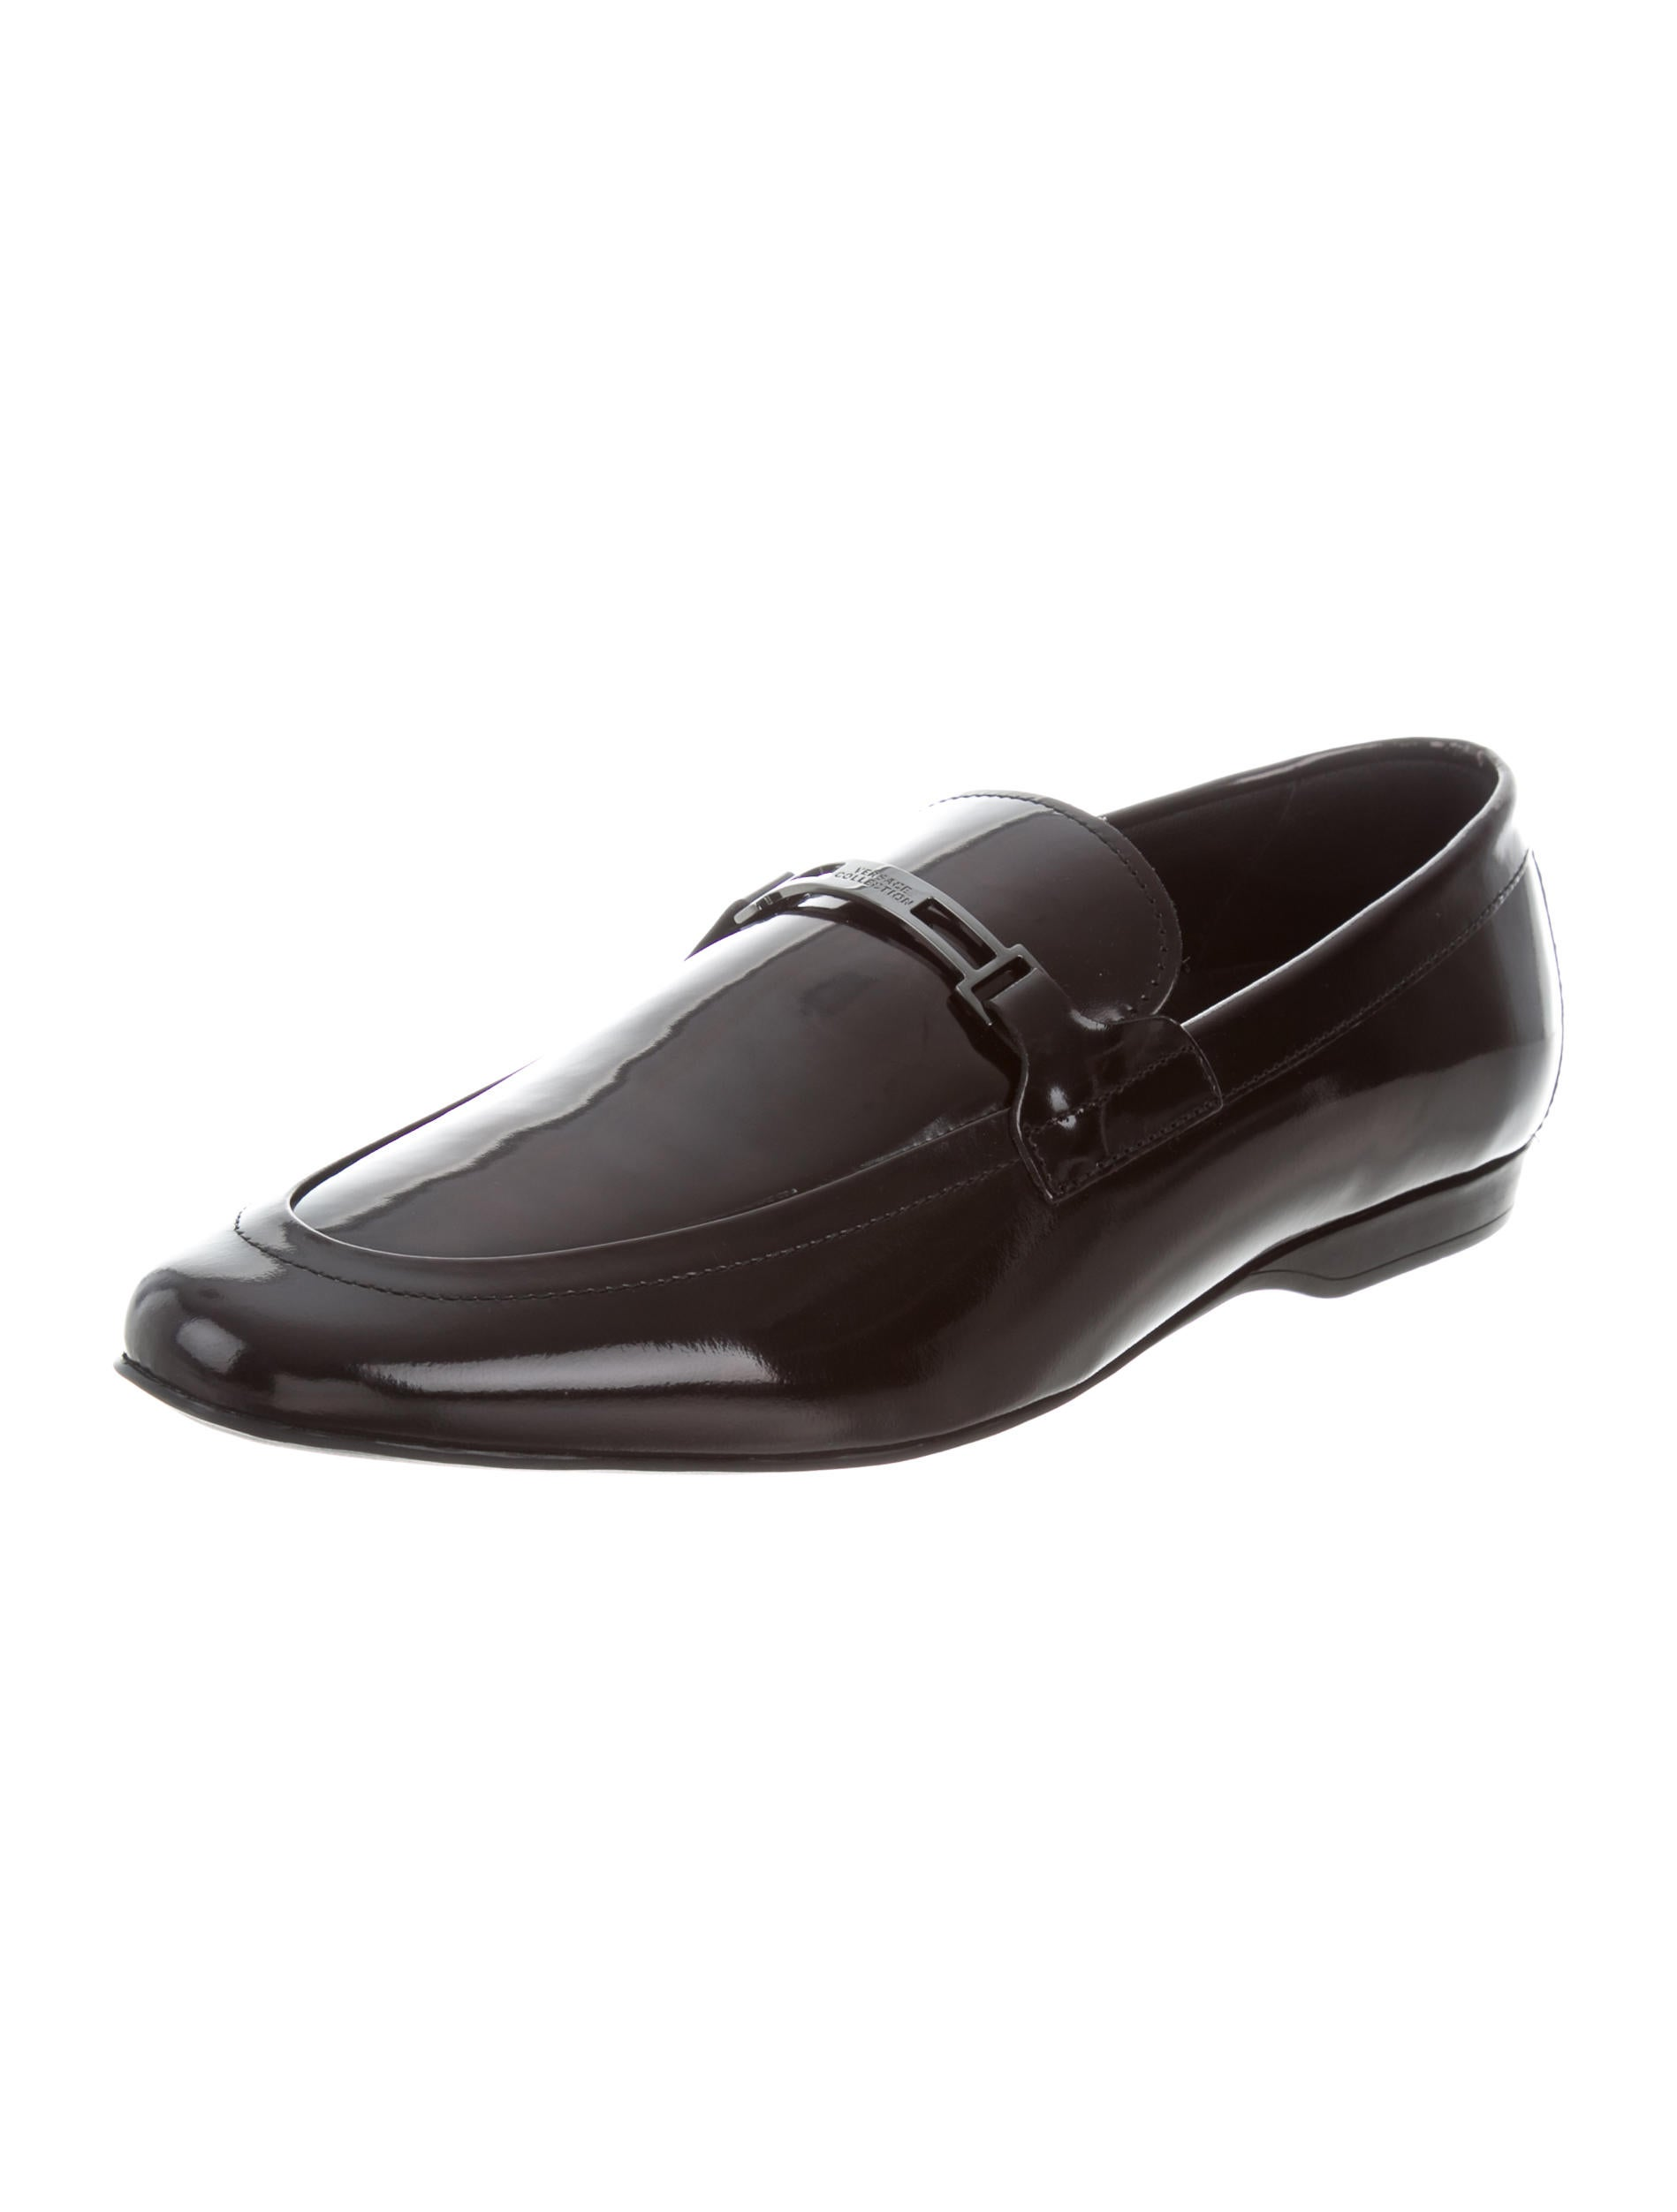 Versace Collection Patent Leather Round Toe Loafers w  : WV9218592enlarged from www.therealreal.com size 1898 x 2504 jpeg 97kB